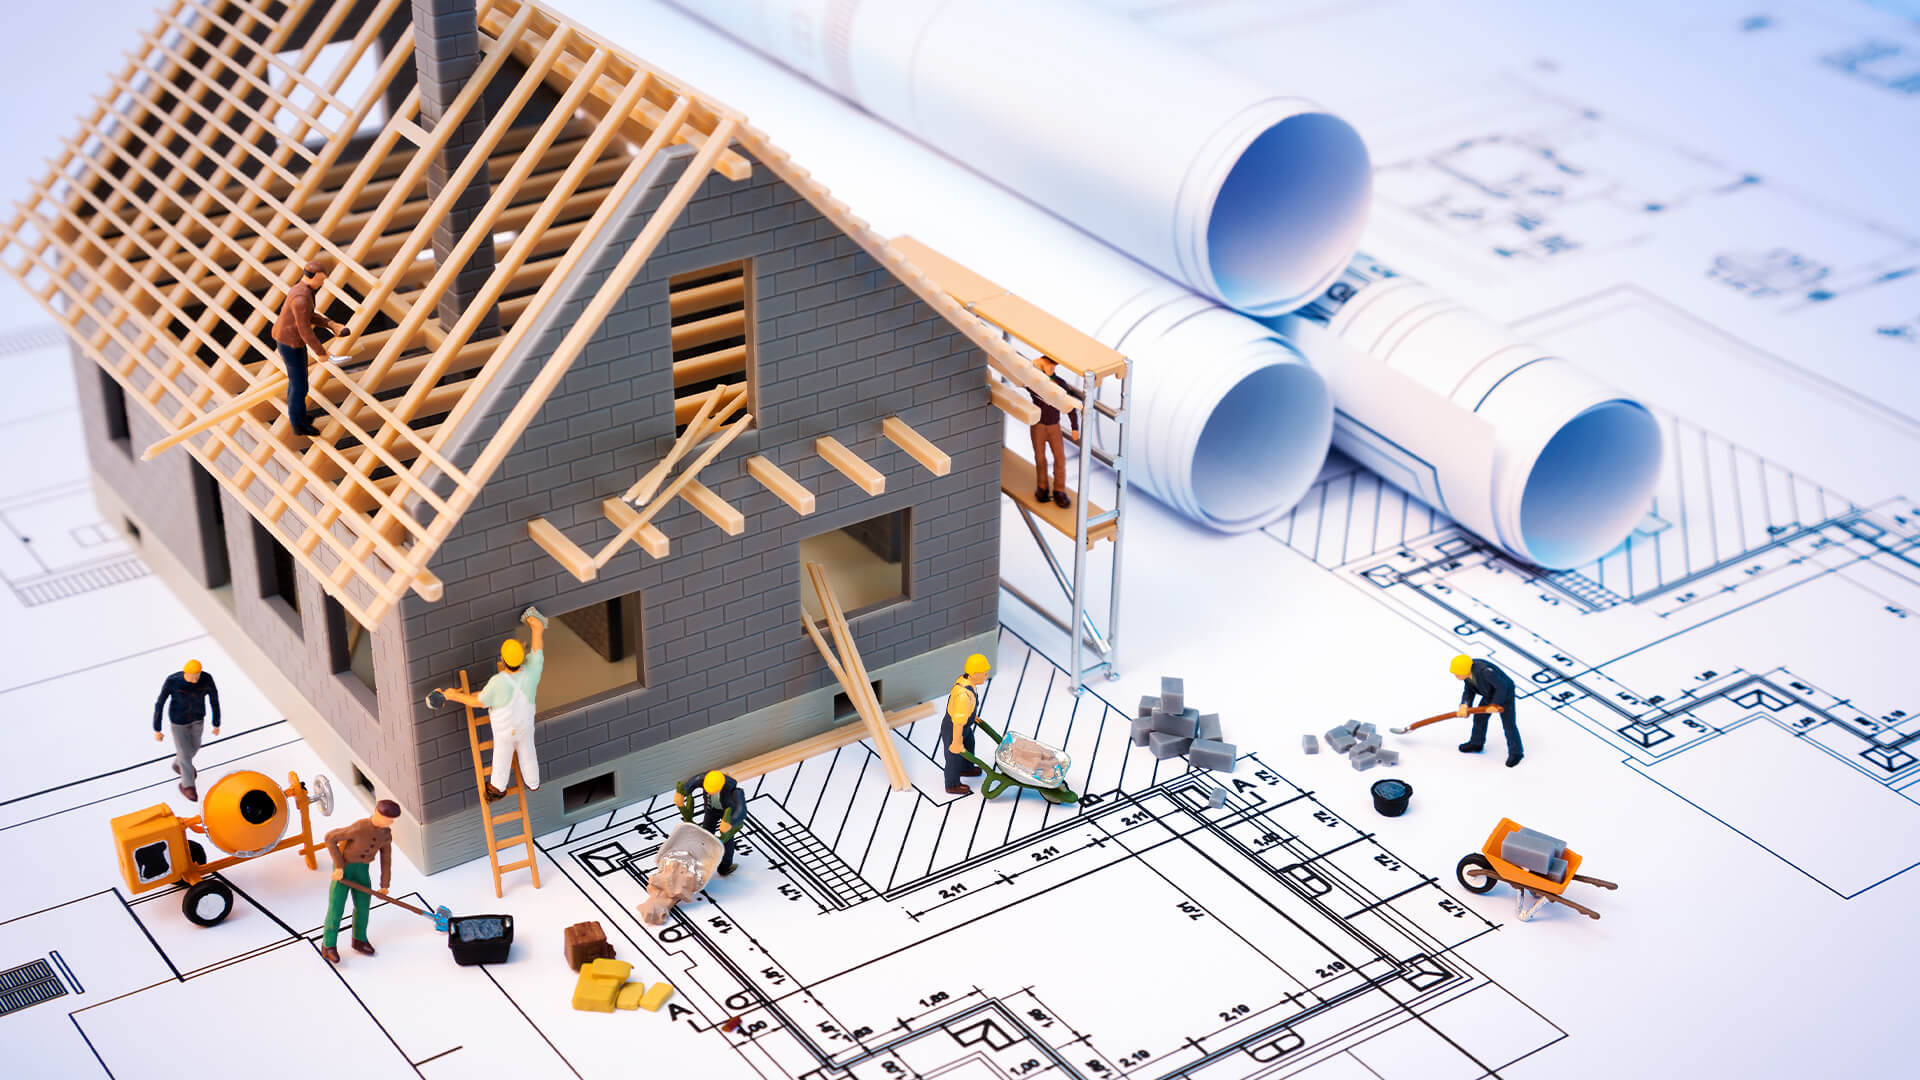 A-guide-to-construction-safety-for-homeb